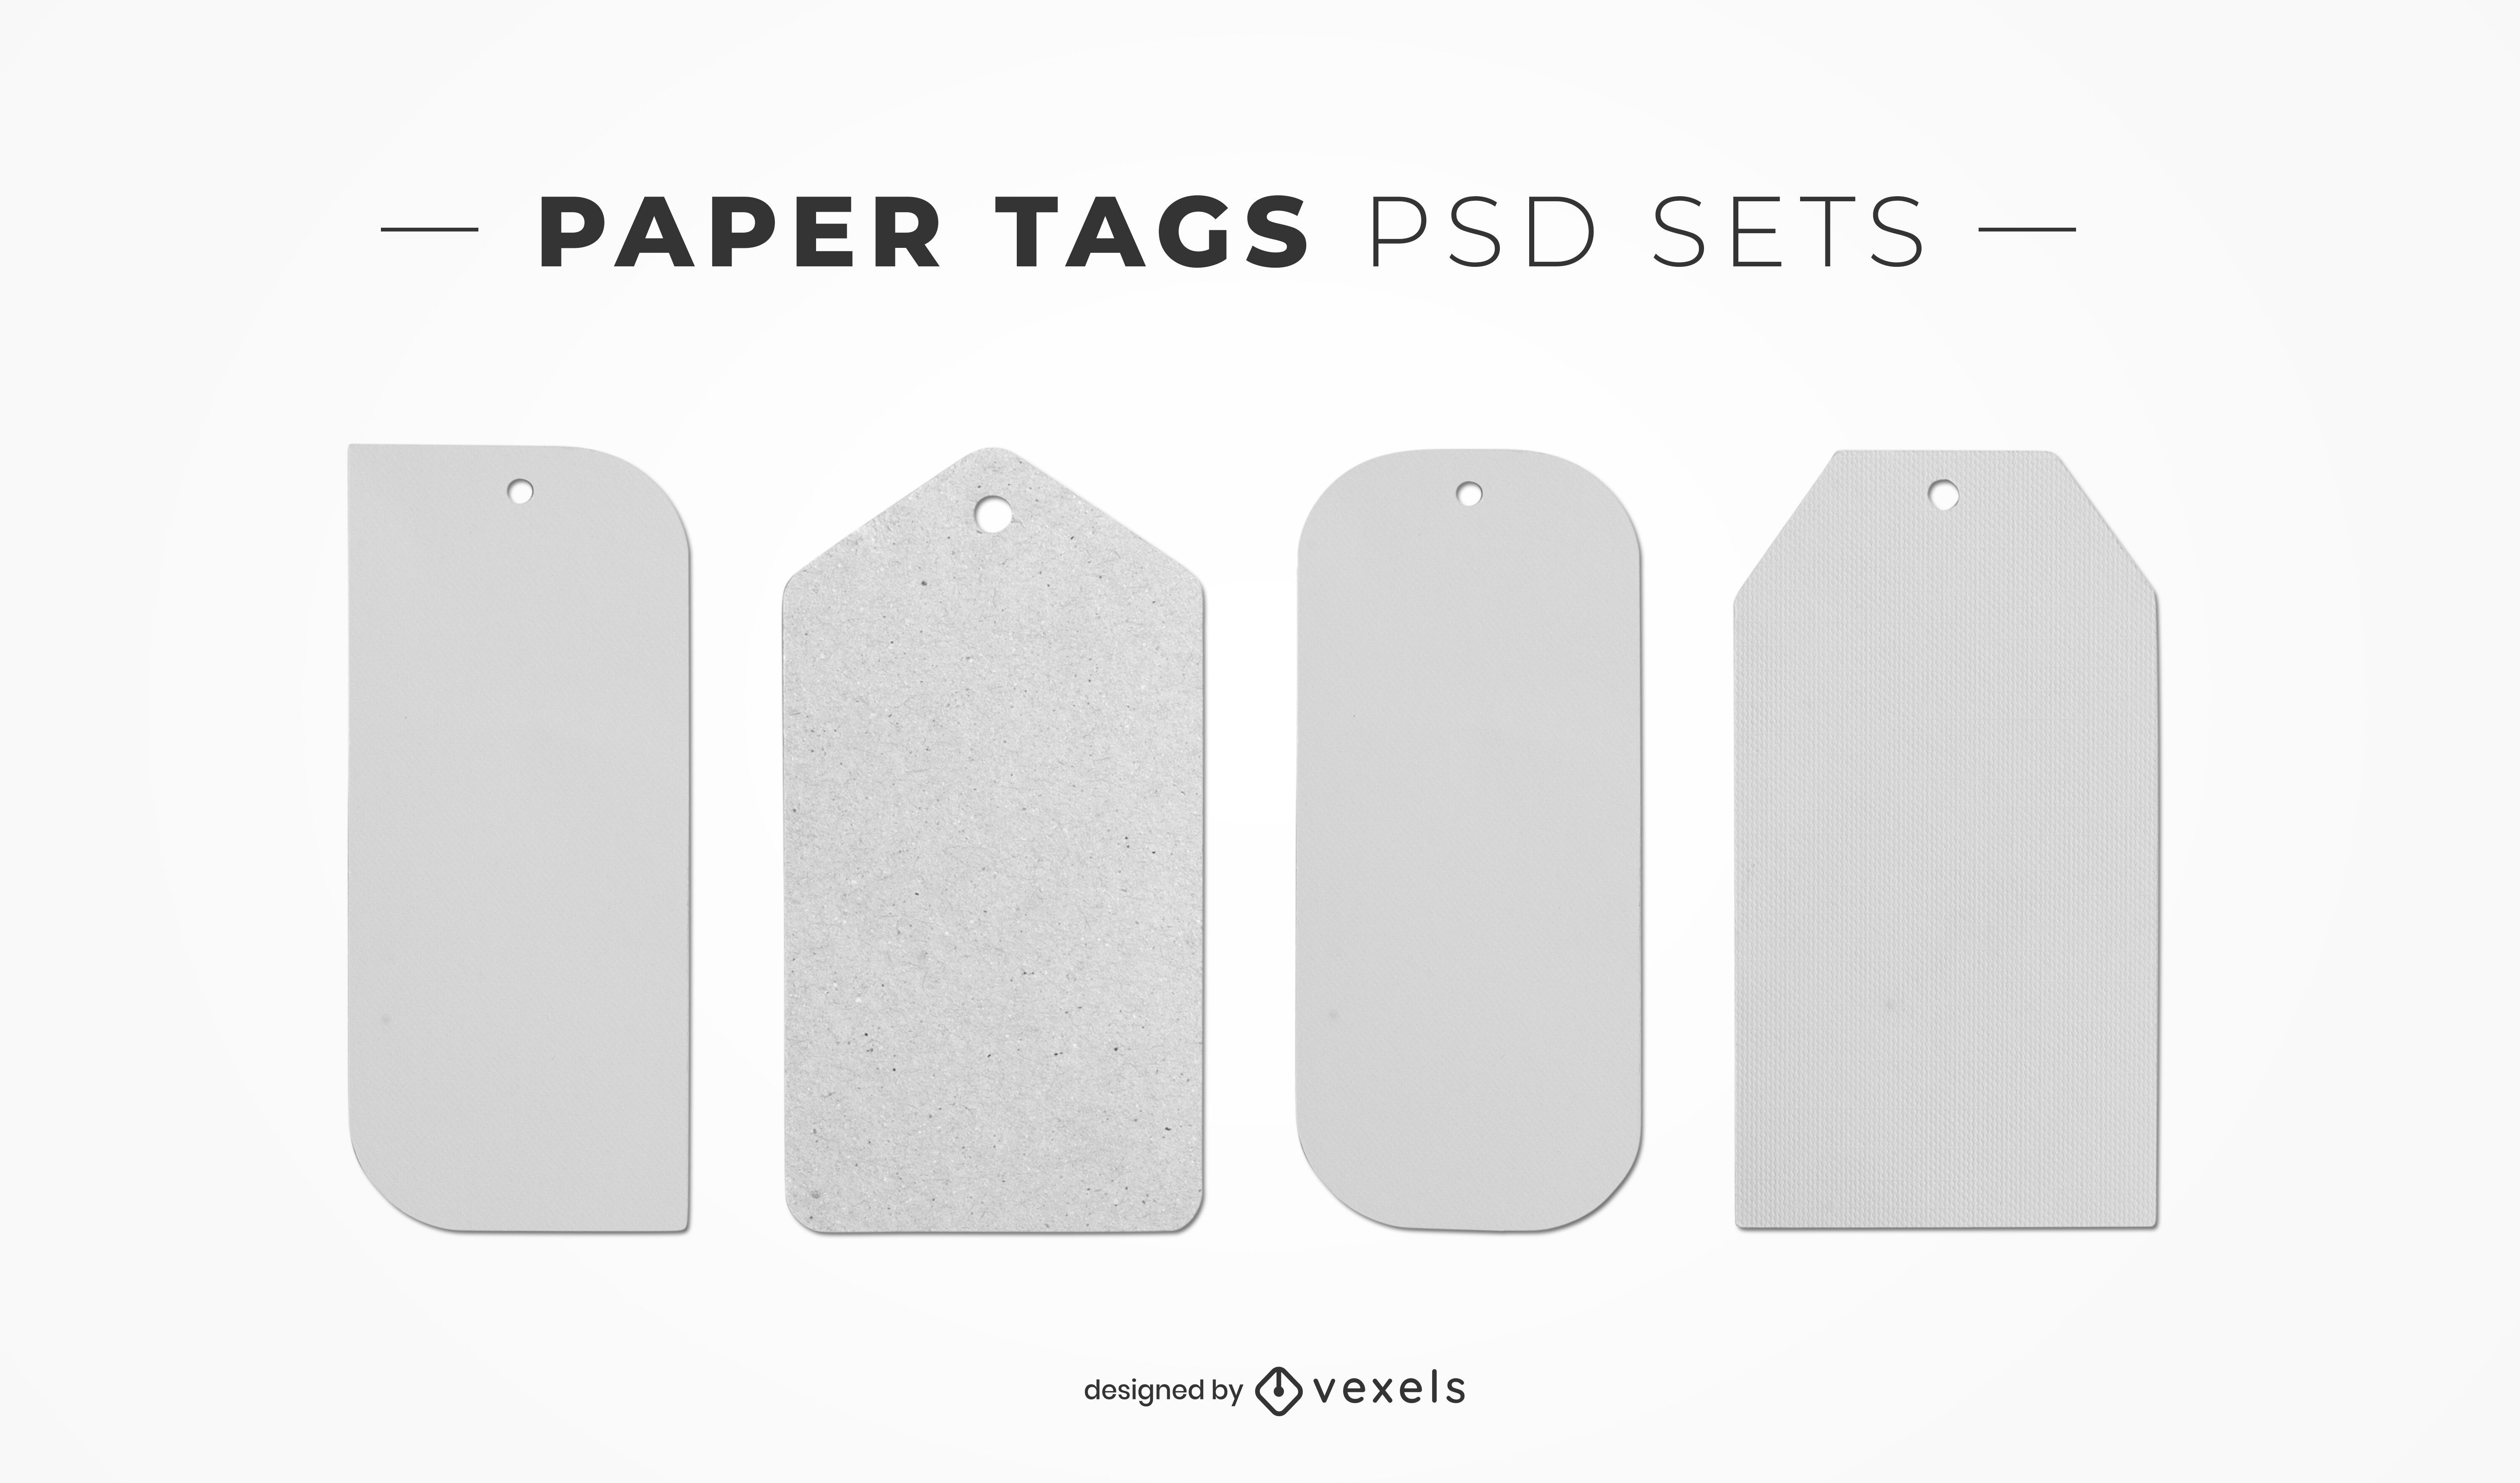 Paper tags psd elements for mockups